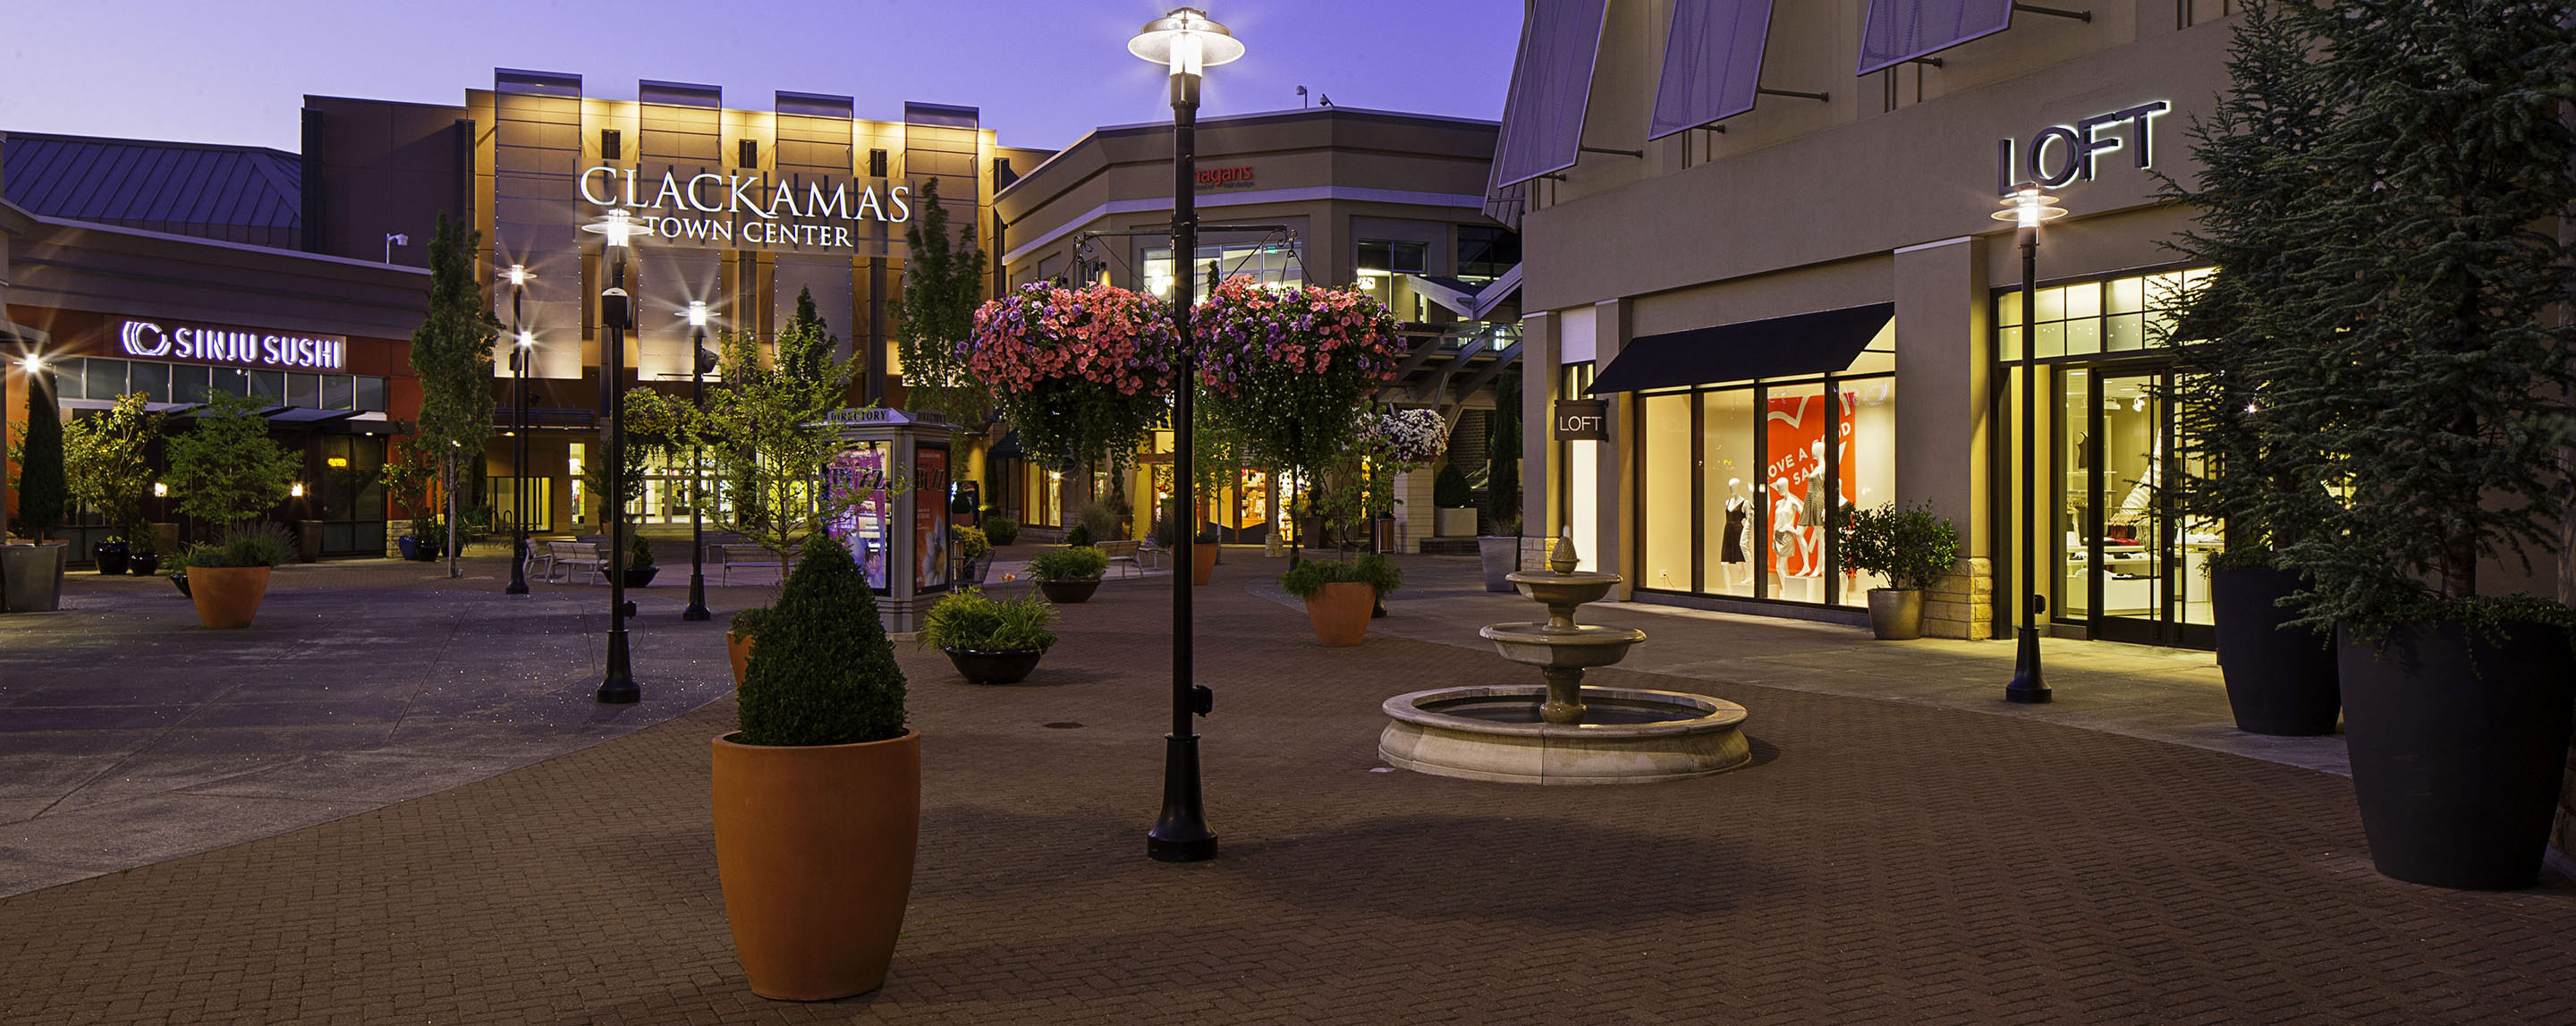 Clackamas Town Center is a shopping mall in Clackamas, Oregon. It is managed and co-owned by General Growth Properties and is currently anchored by JCPenney, Macy's (including a separate home store), Nordstrom, Sears.